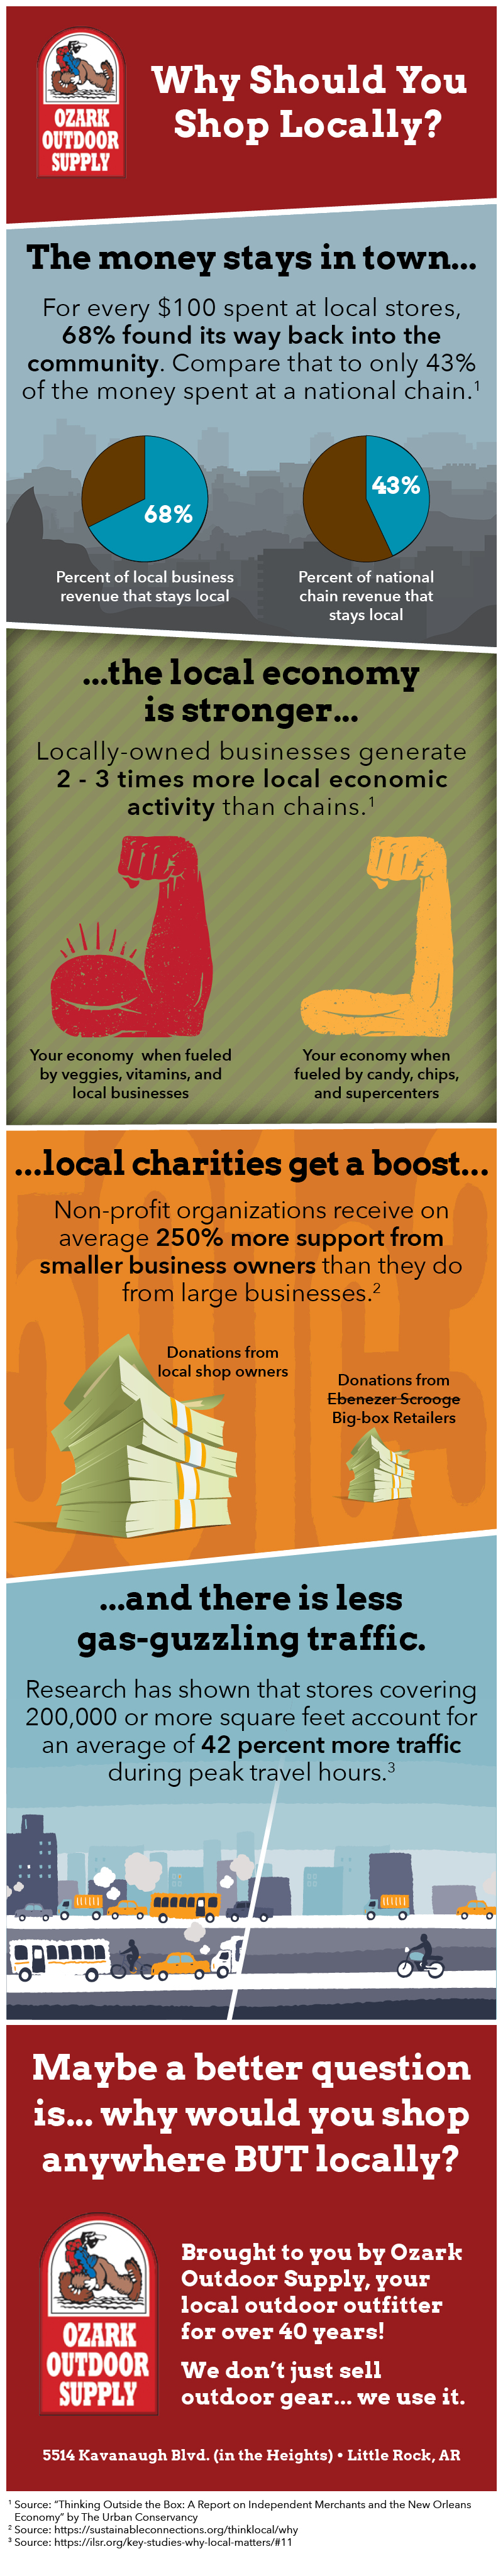 Why should you shop locally?